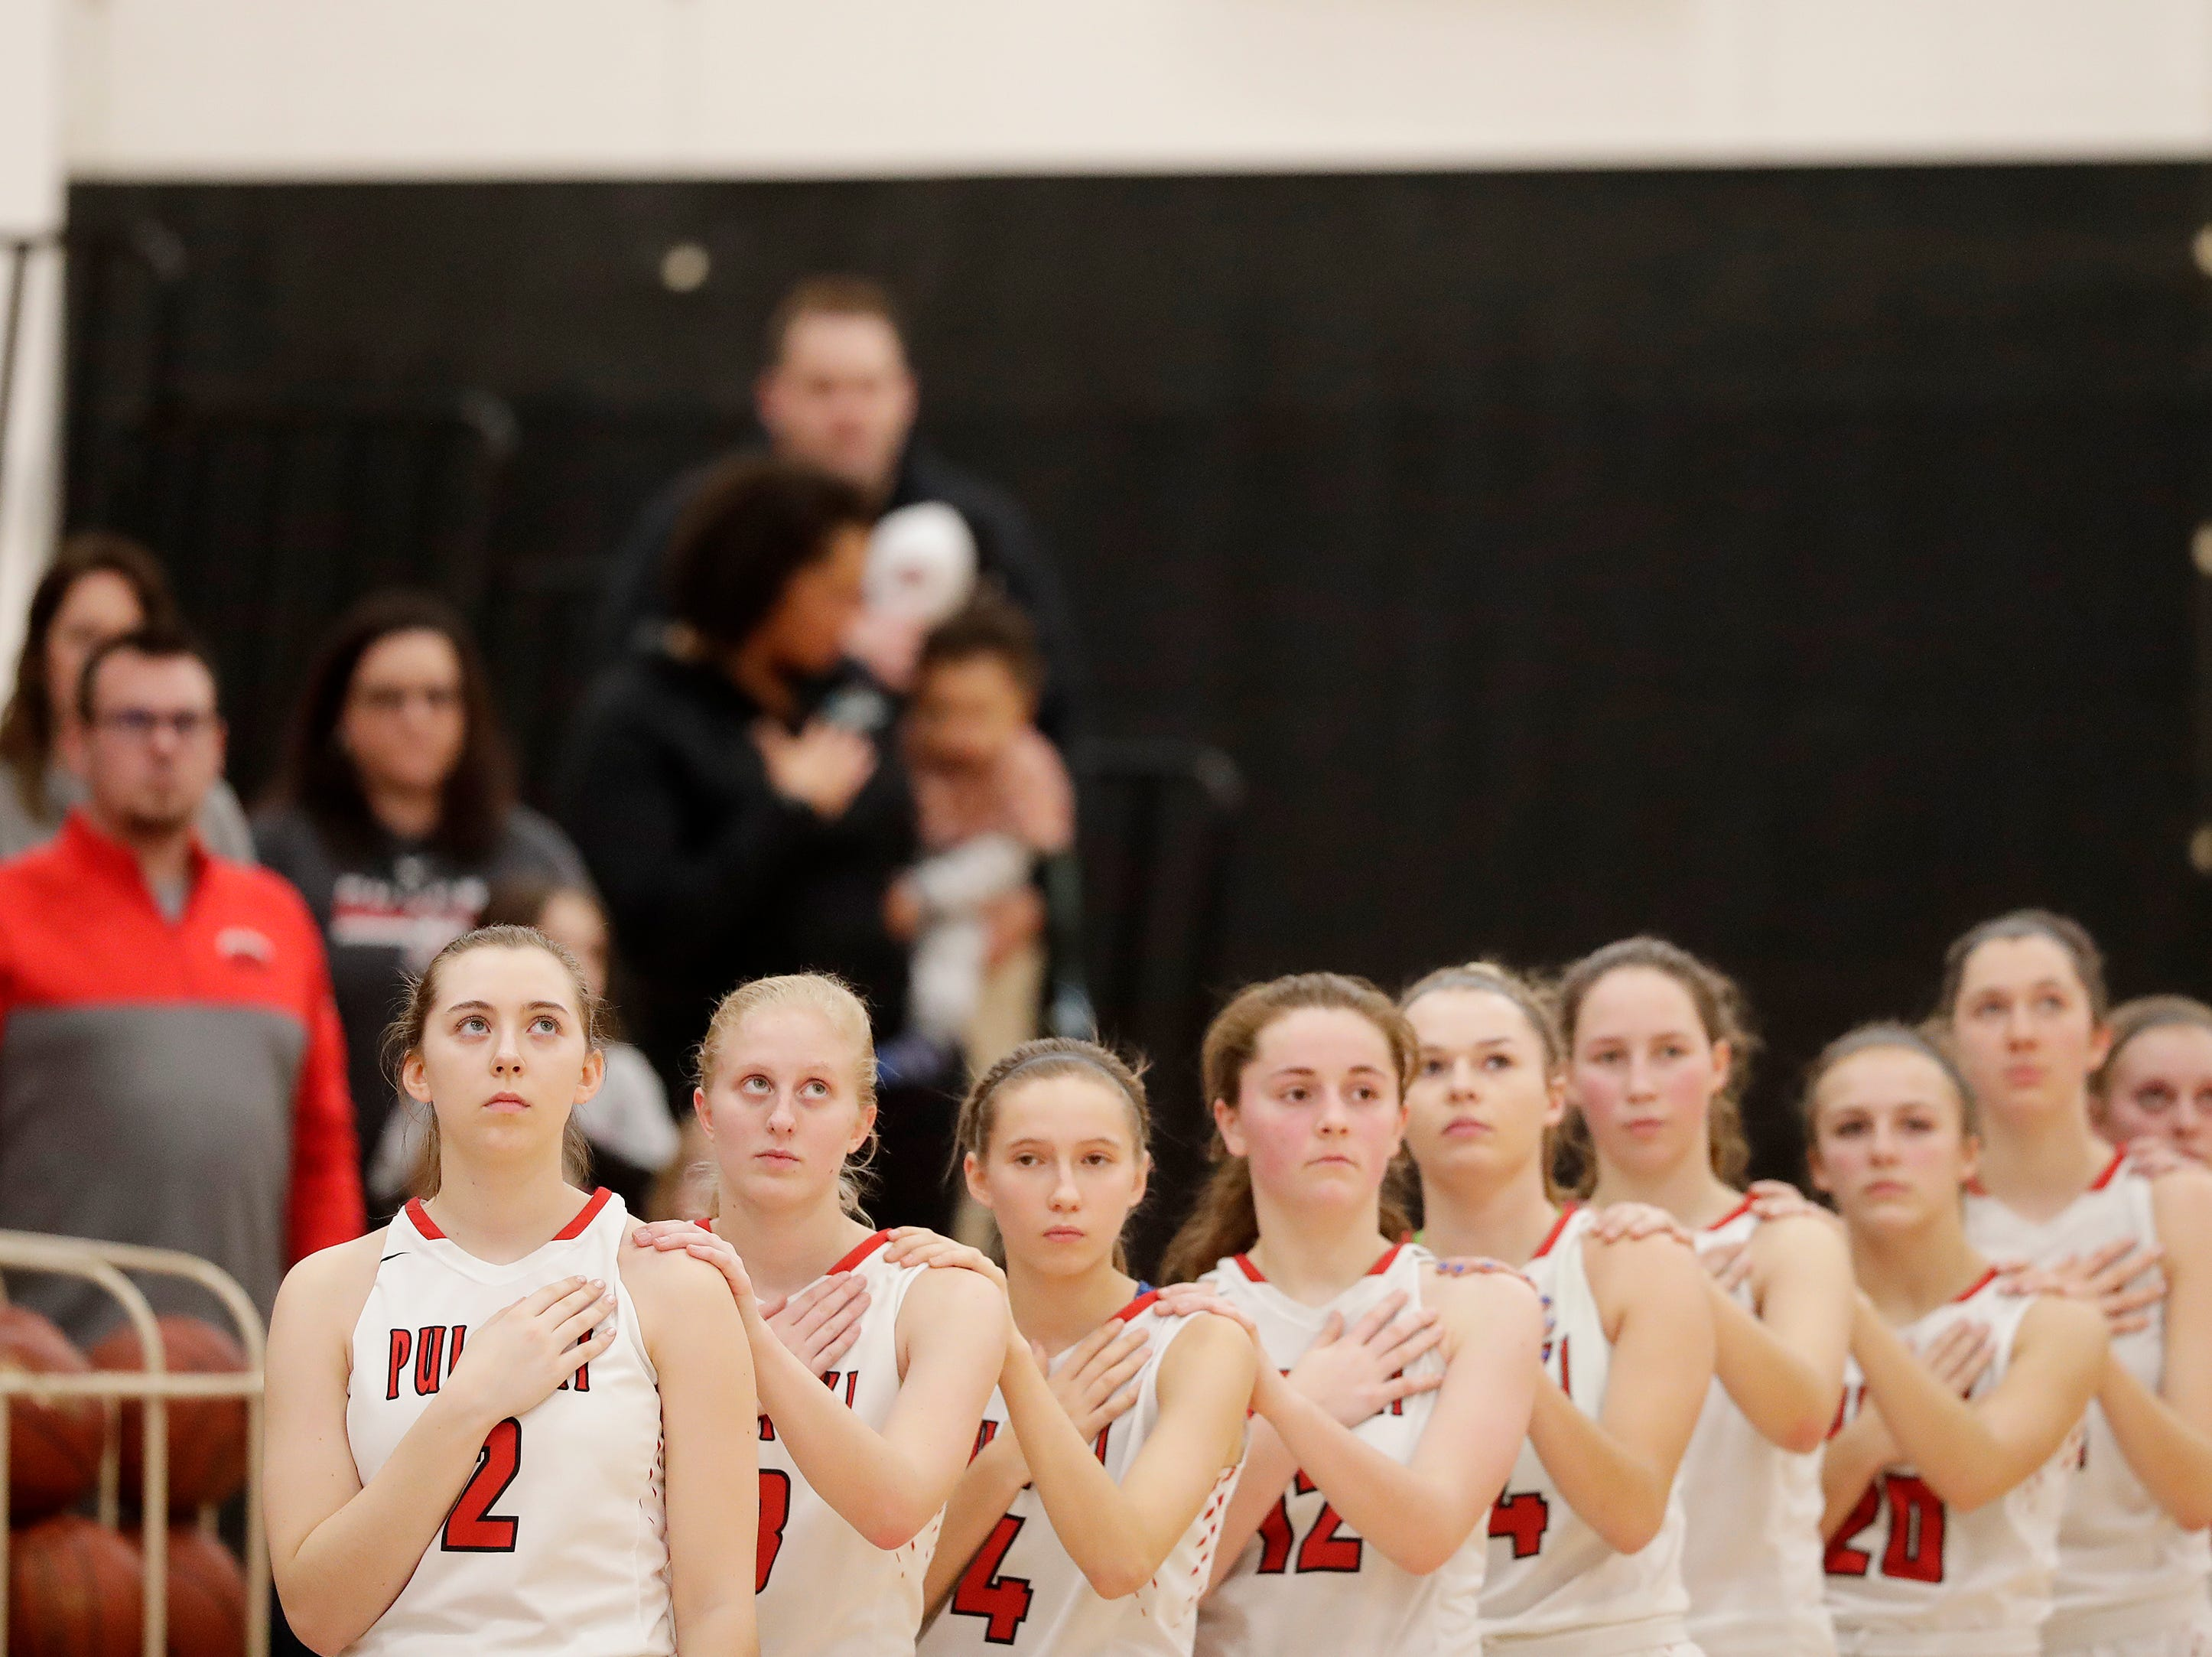 Pulaski players lineup for the anthem before a game against Bay Port at Pulaski high school on Friday, January 4, 2019 in Pulaski, Wis.